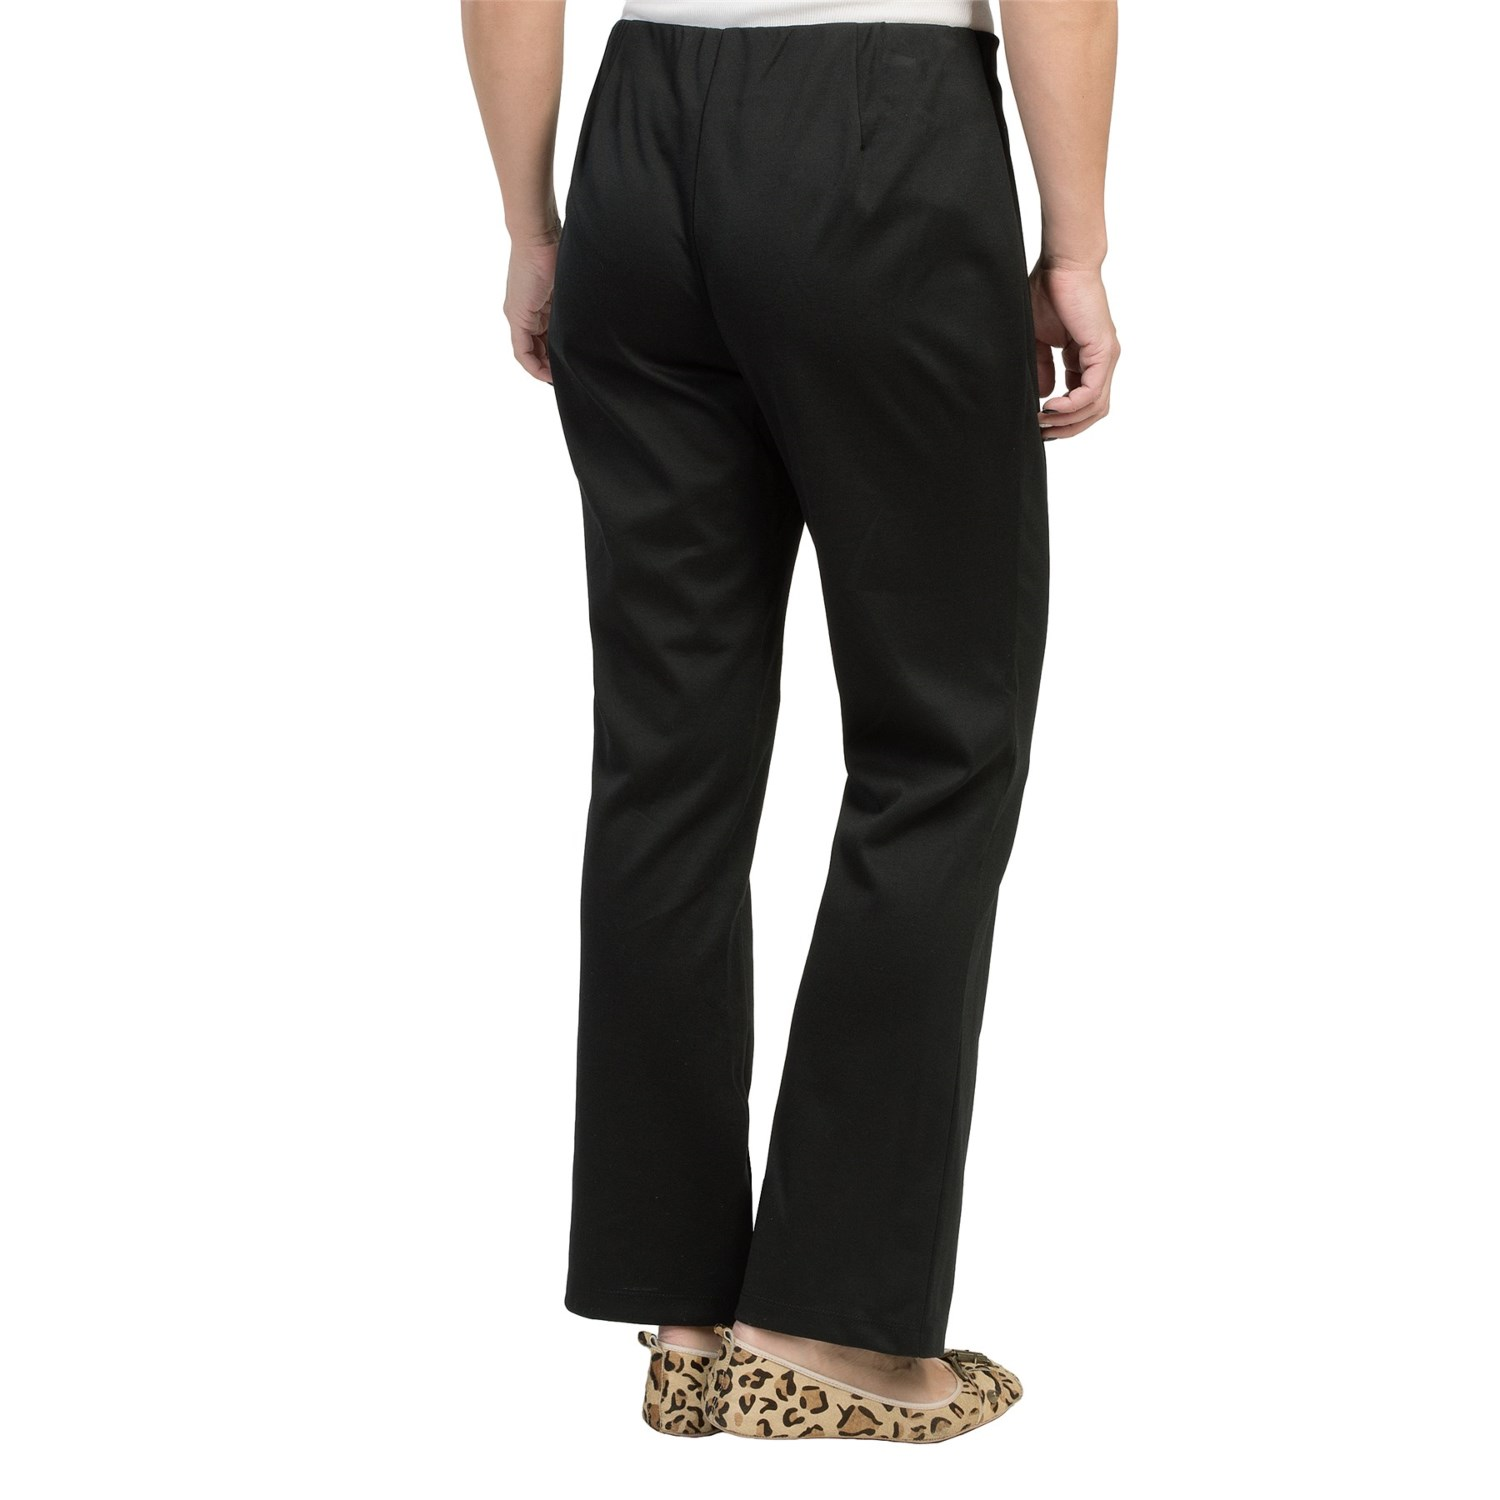 Casually comfortable. You'll love the feel of these petite knit pull-on pants from Croft & Barrow.